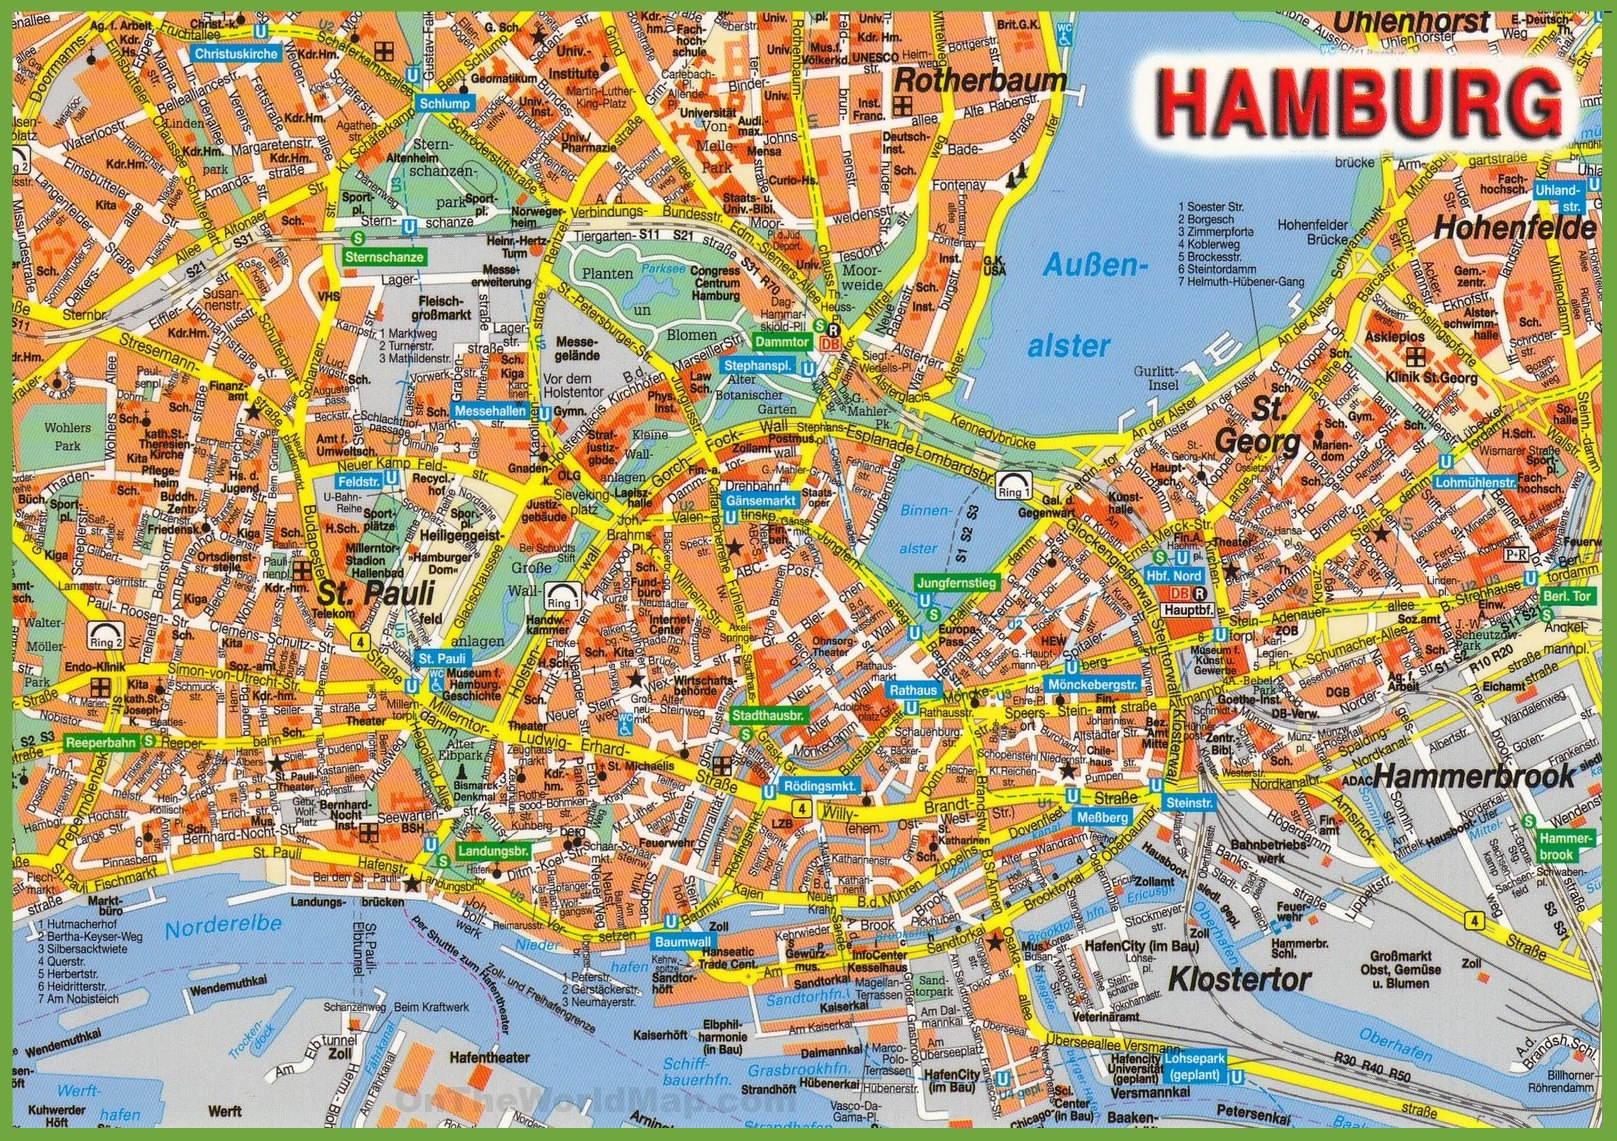 Hamburg tourist attractions map – Tourist Attractions Map In Turkey